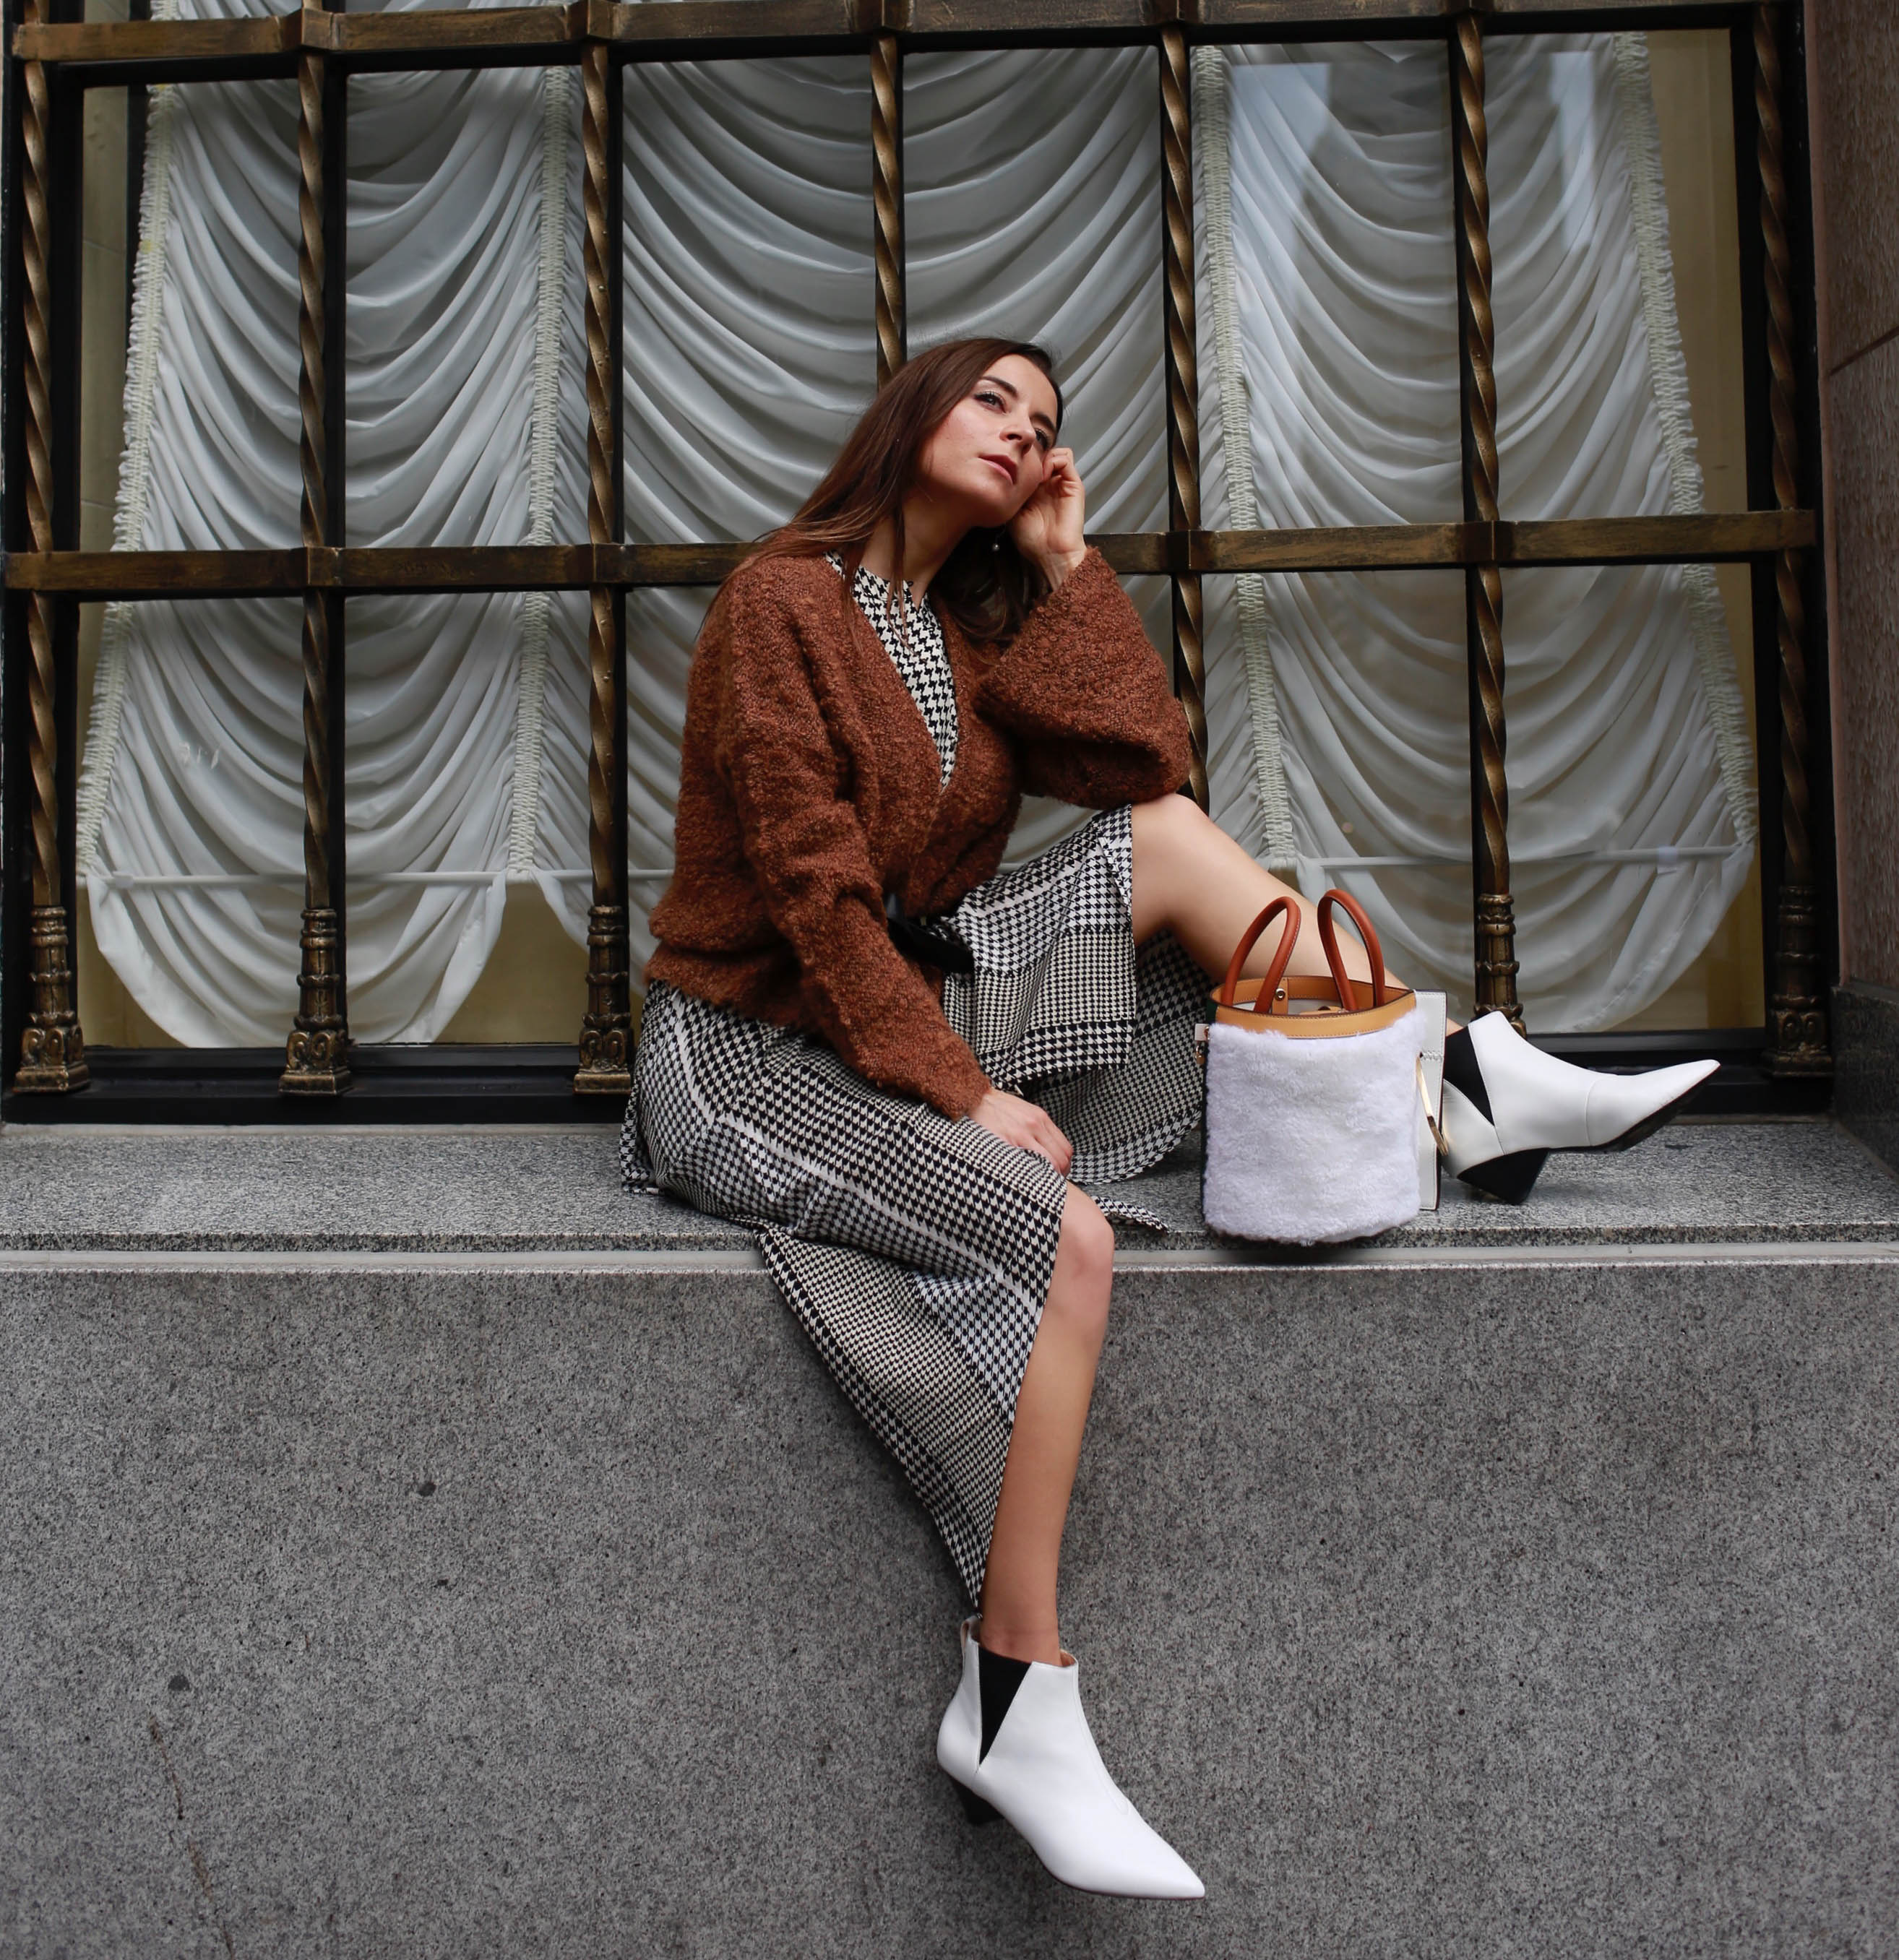 Discover the 2018 most instagrammable bags: designed by the British label: Danse Lente. Danse Lente review: affordable It bags made of high-quality leather and with a great attention to details. Worn by fashion editors and fashion bloggers worldwide. More on Houseofcomil.com. By Julia Comil French fashion blogger in Los Angeles